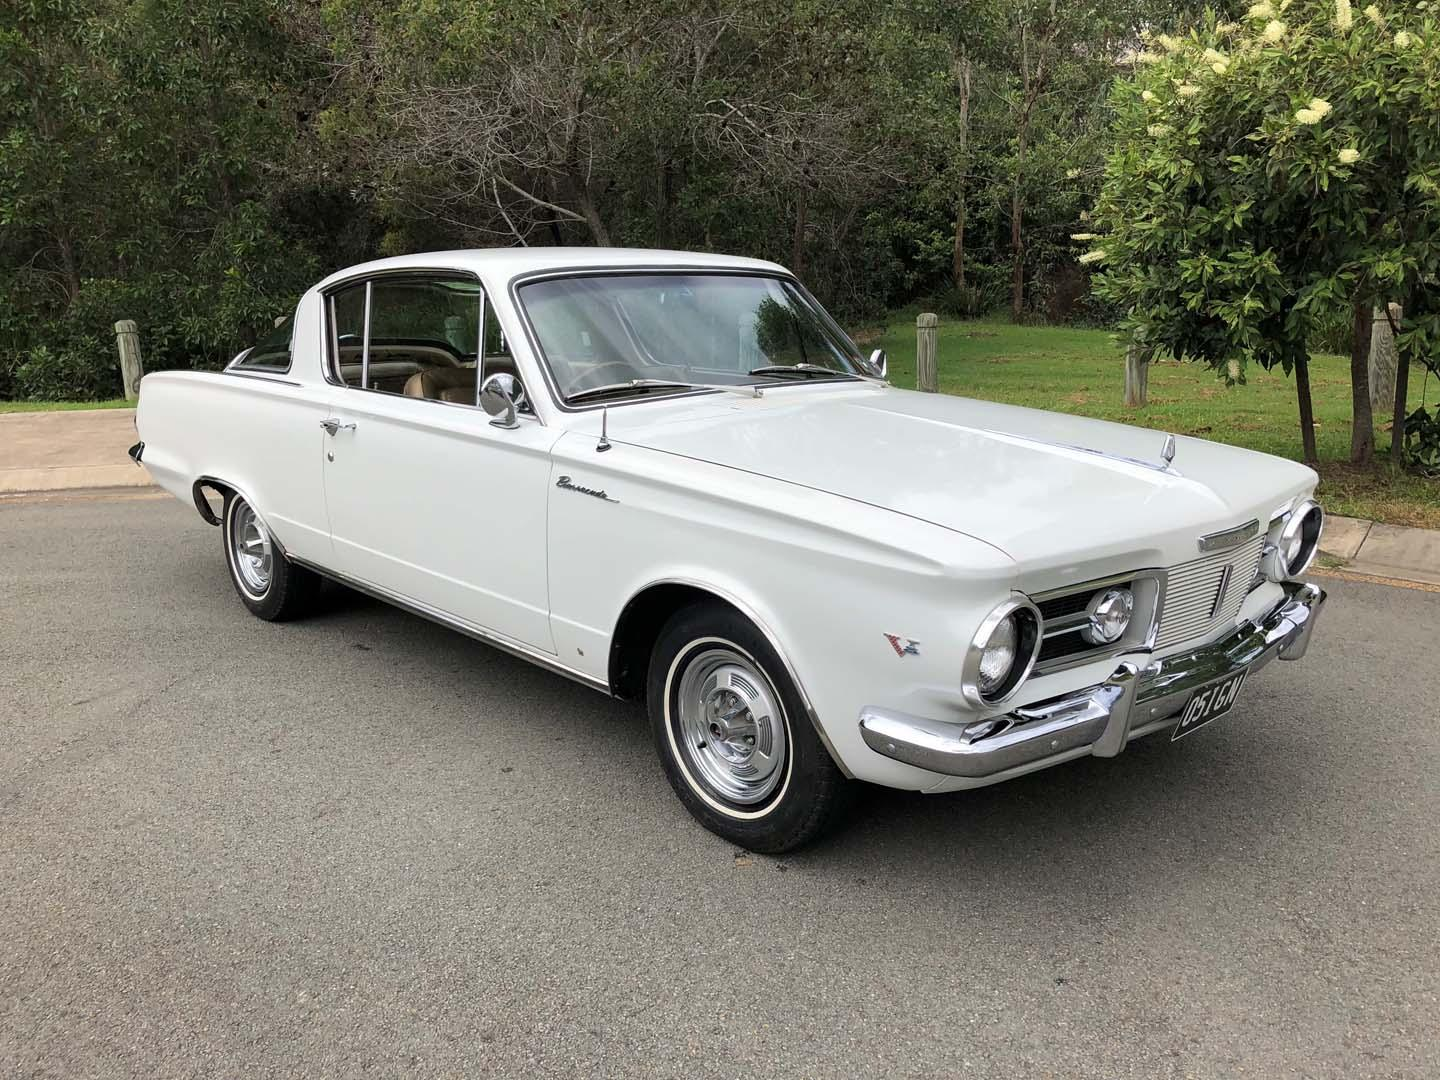 1964 Plymouth Barracuda - JUST CARS